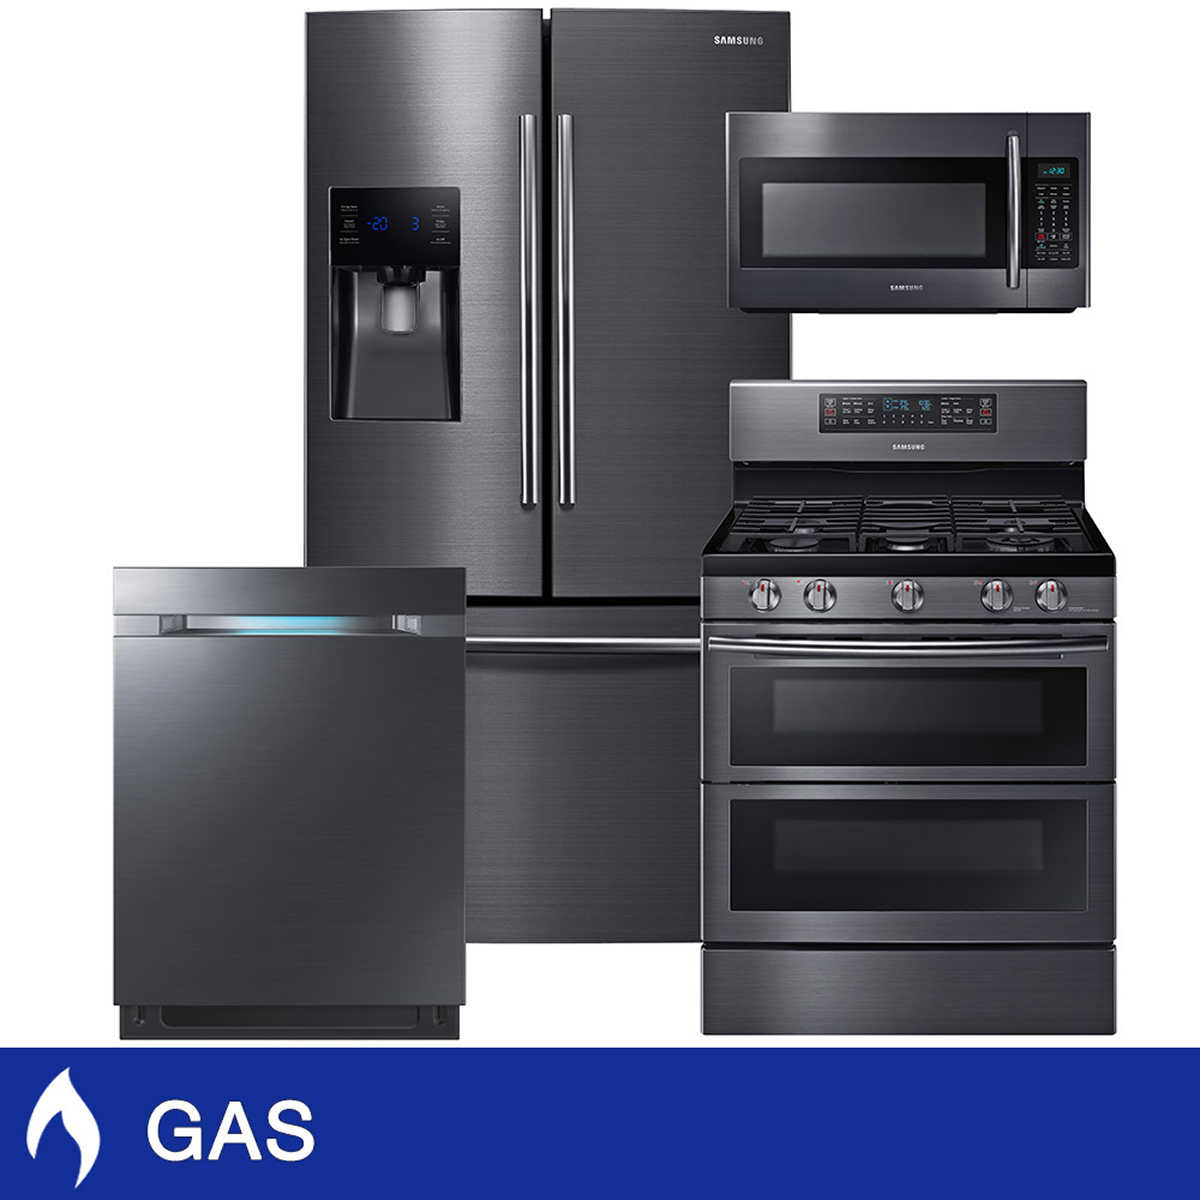 Uncategorized 3 Piece Kitchen Appliance Package kitchen suites costco samsung 4 piece gas 25cuft 3 door french refrigerator suite in black